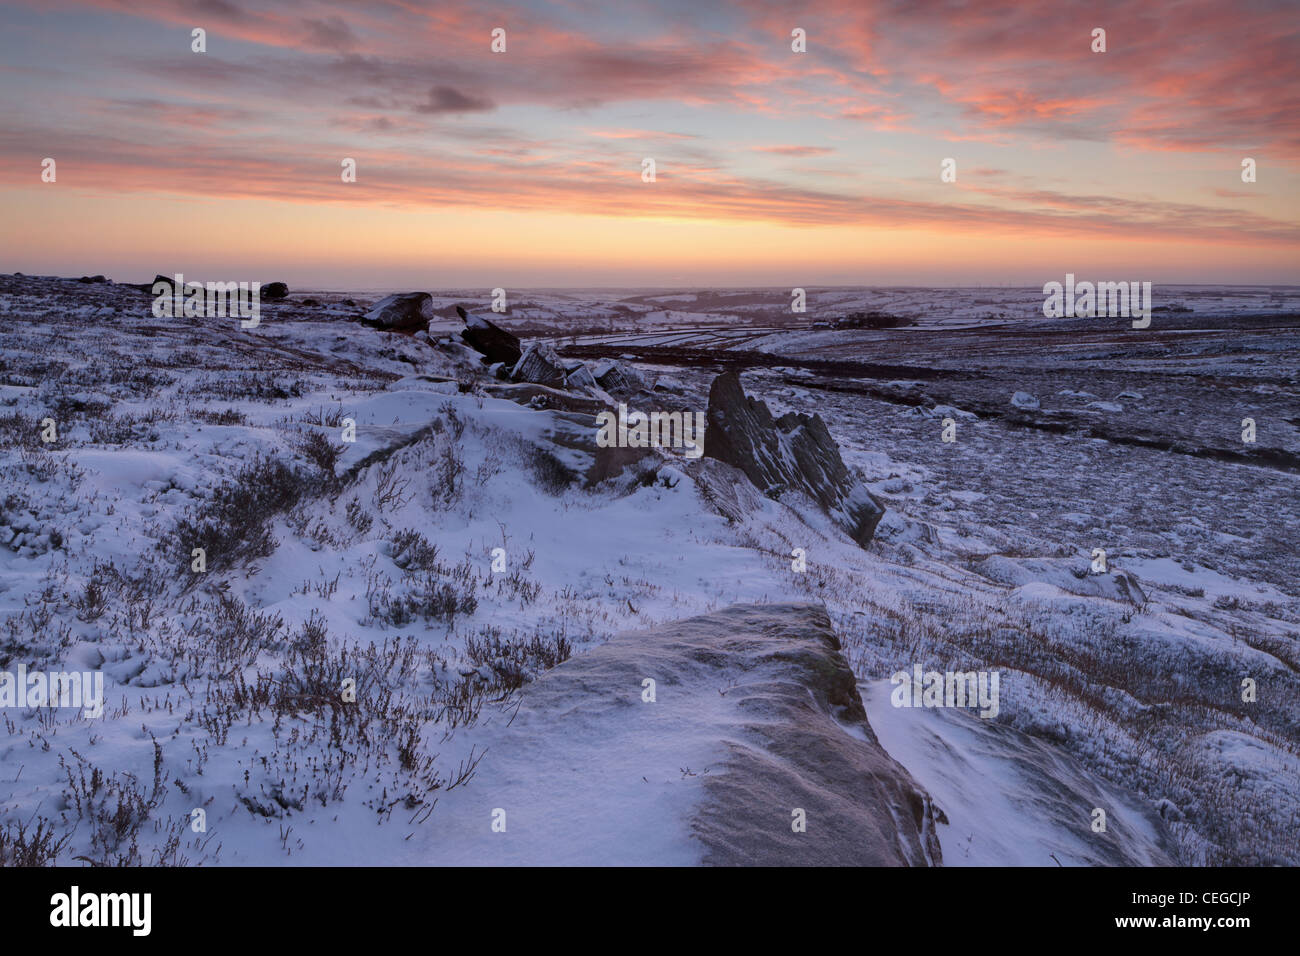 A crisp winter sunrise over Nidderdale as seen from High Crag Ridge near Pateley Bridge and Glasshouses in Yorkshire, - Stock Image